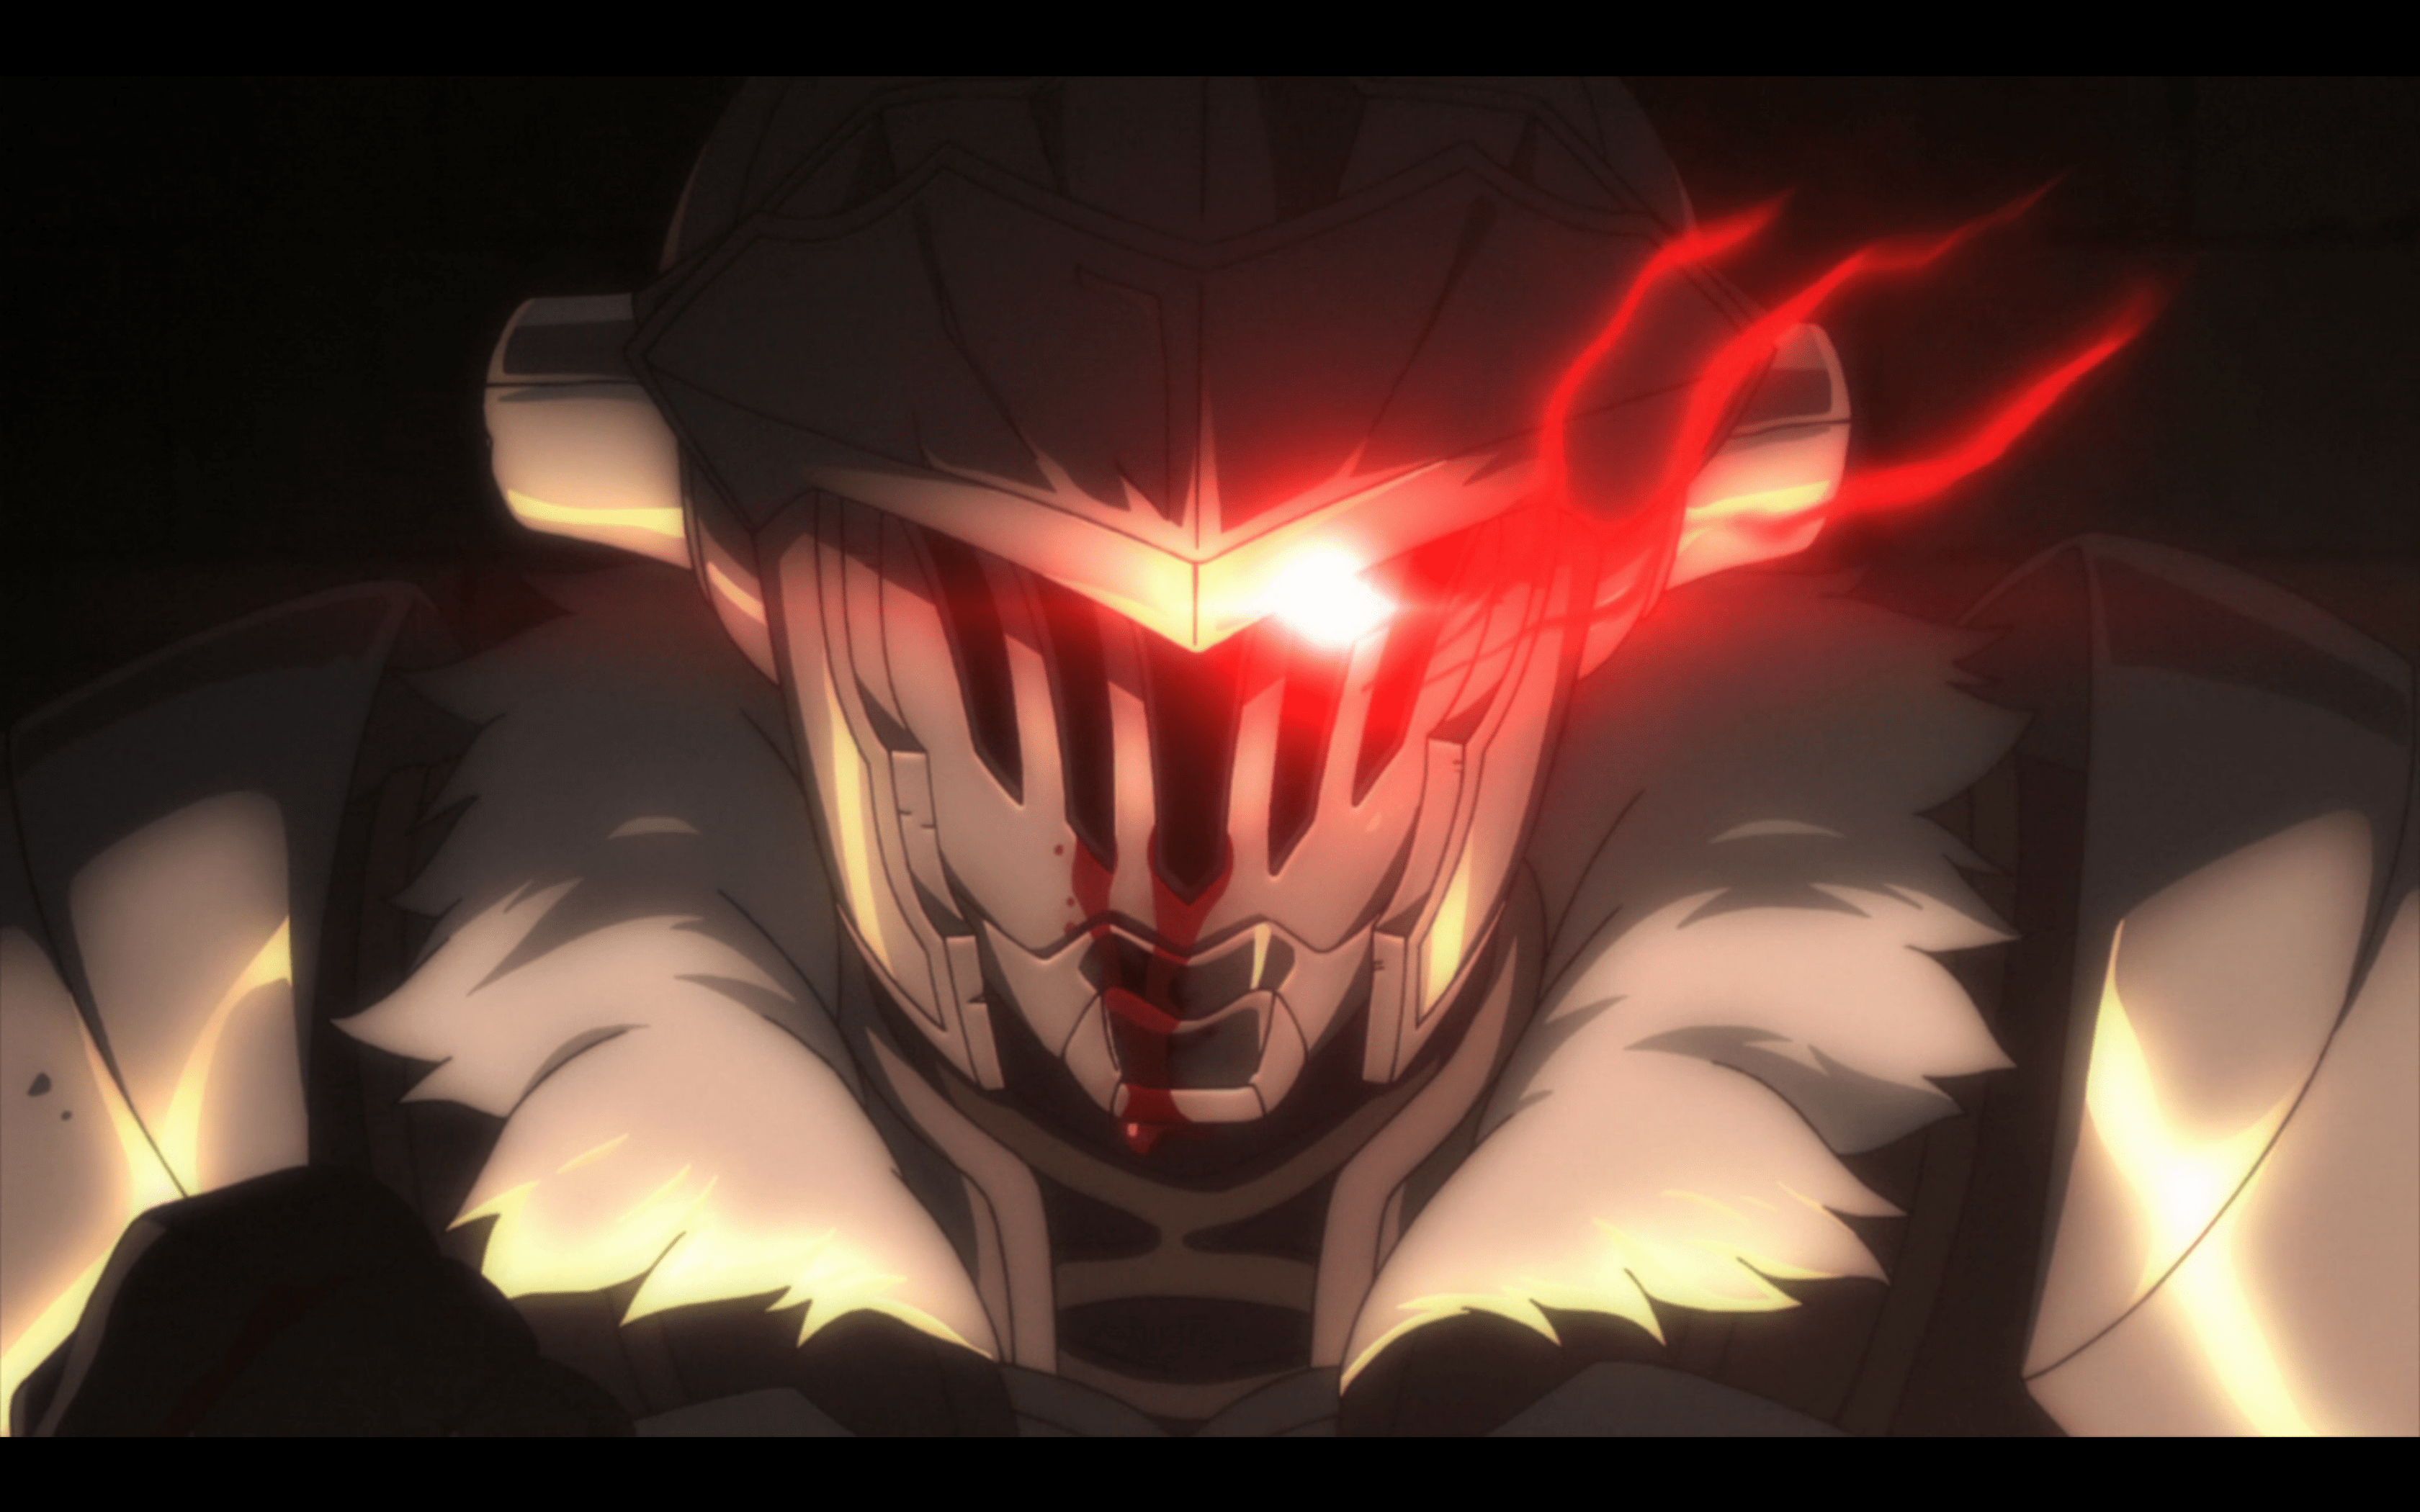 Goblin Slayer - Episode 7 (Review) - The Geekly Grind